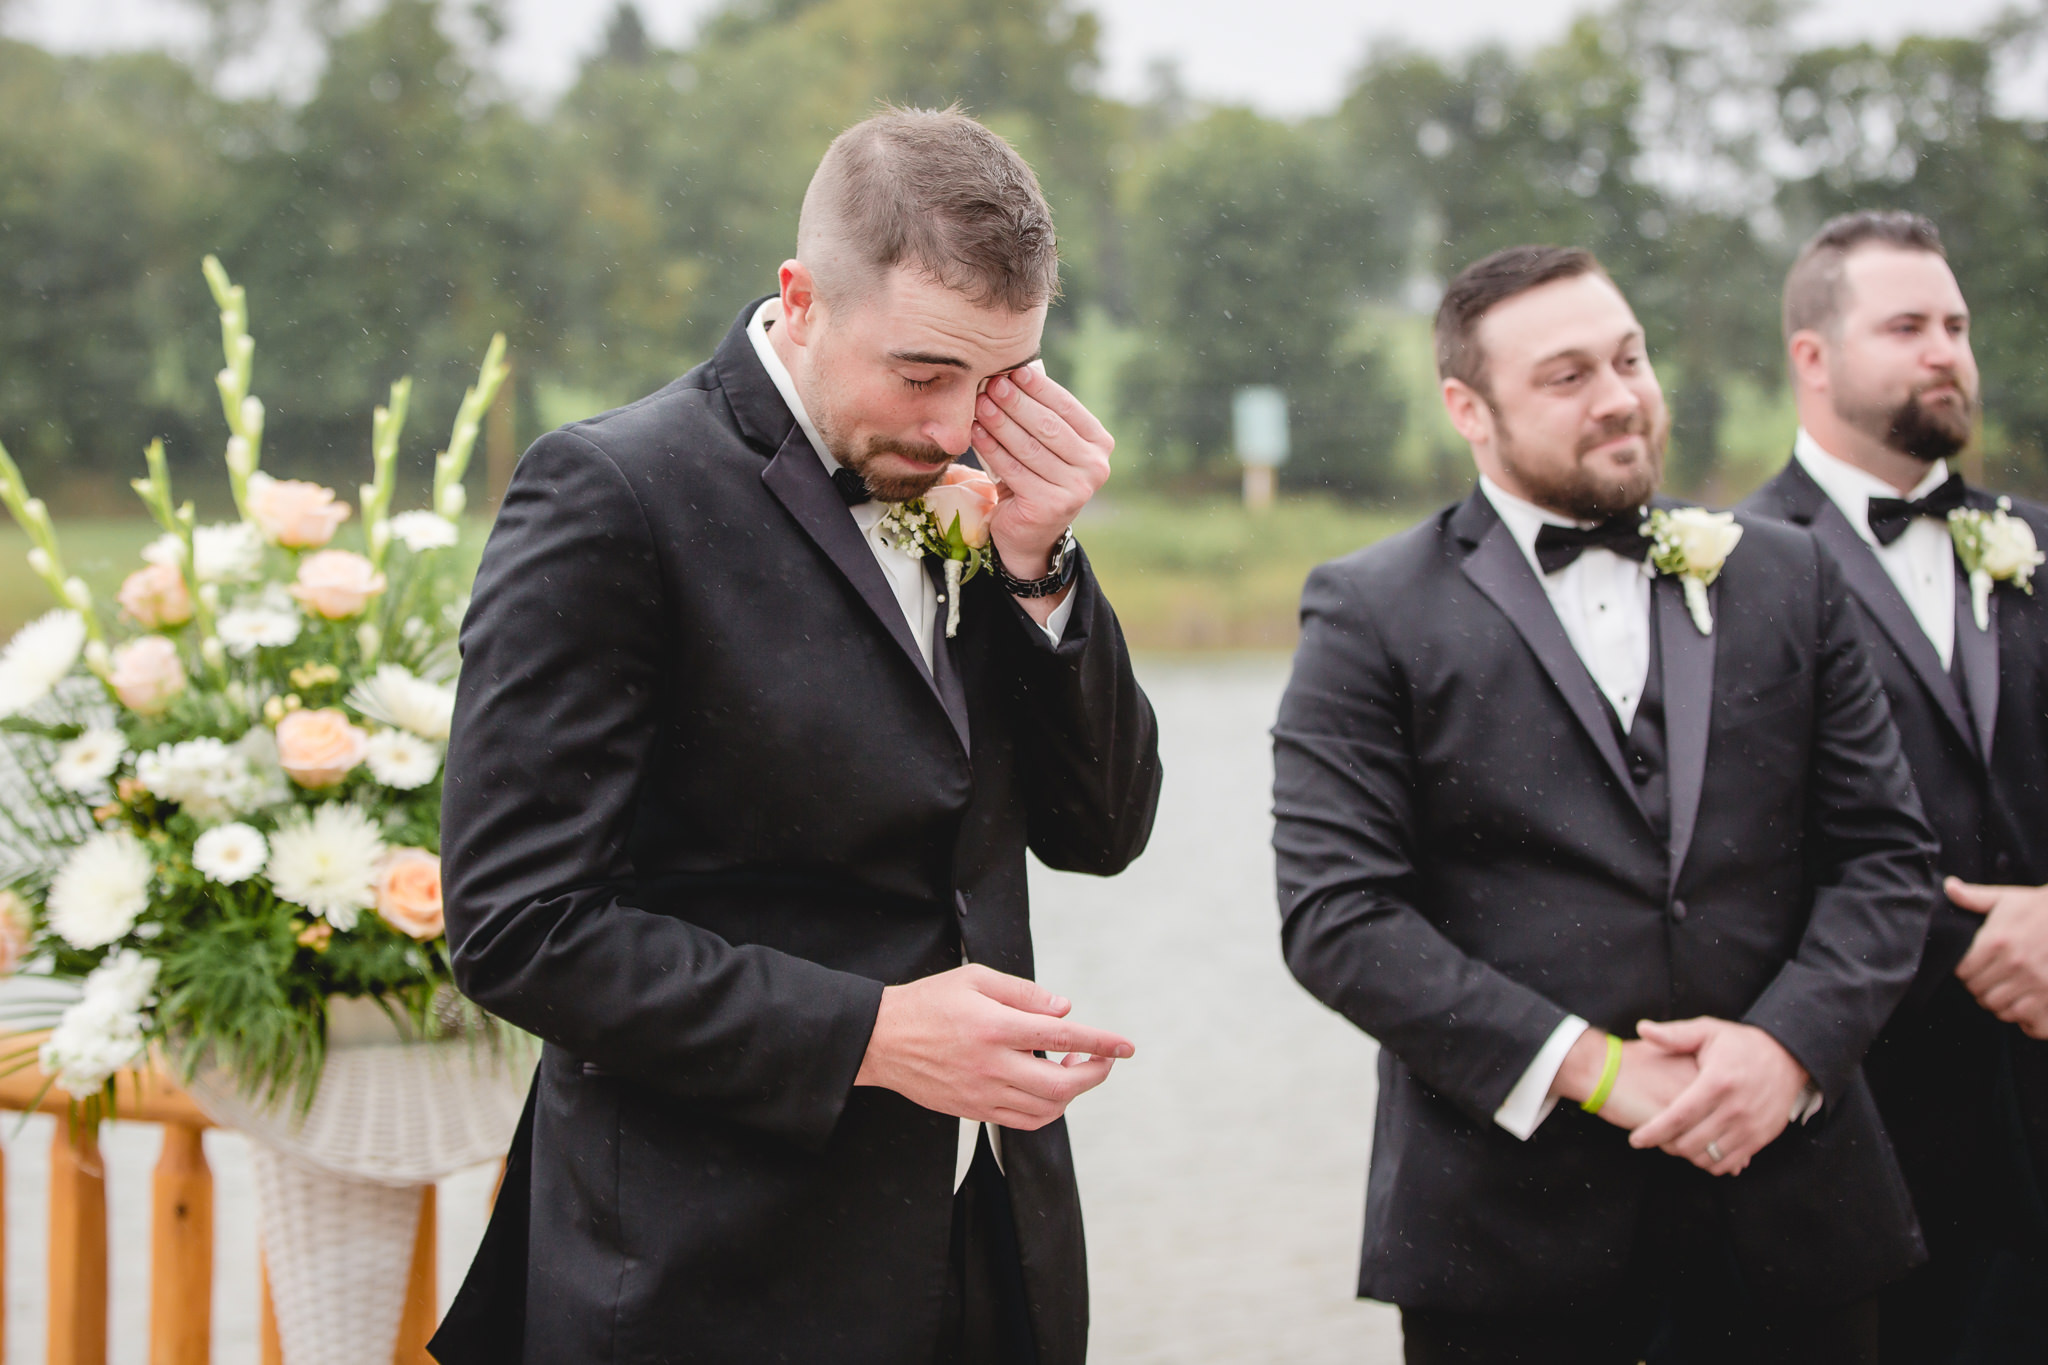 Groom wipes away tears as his bride walks down the aisle at the Gathering Place at Darlington Lake